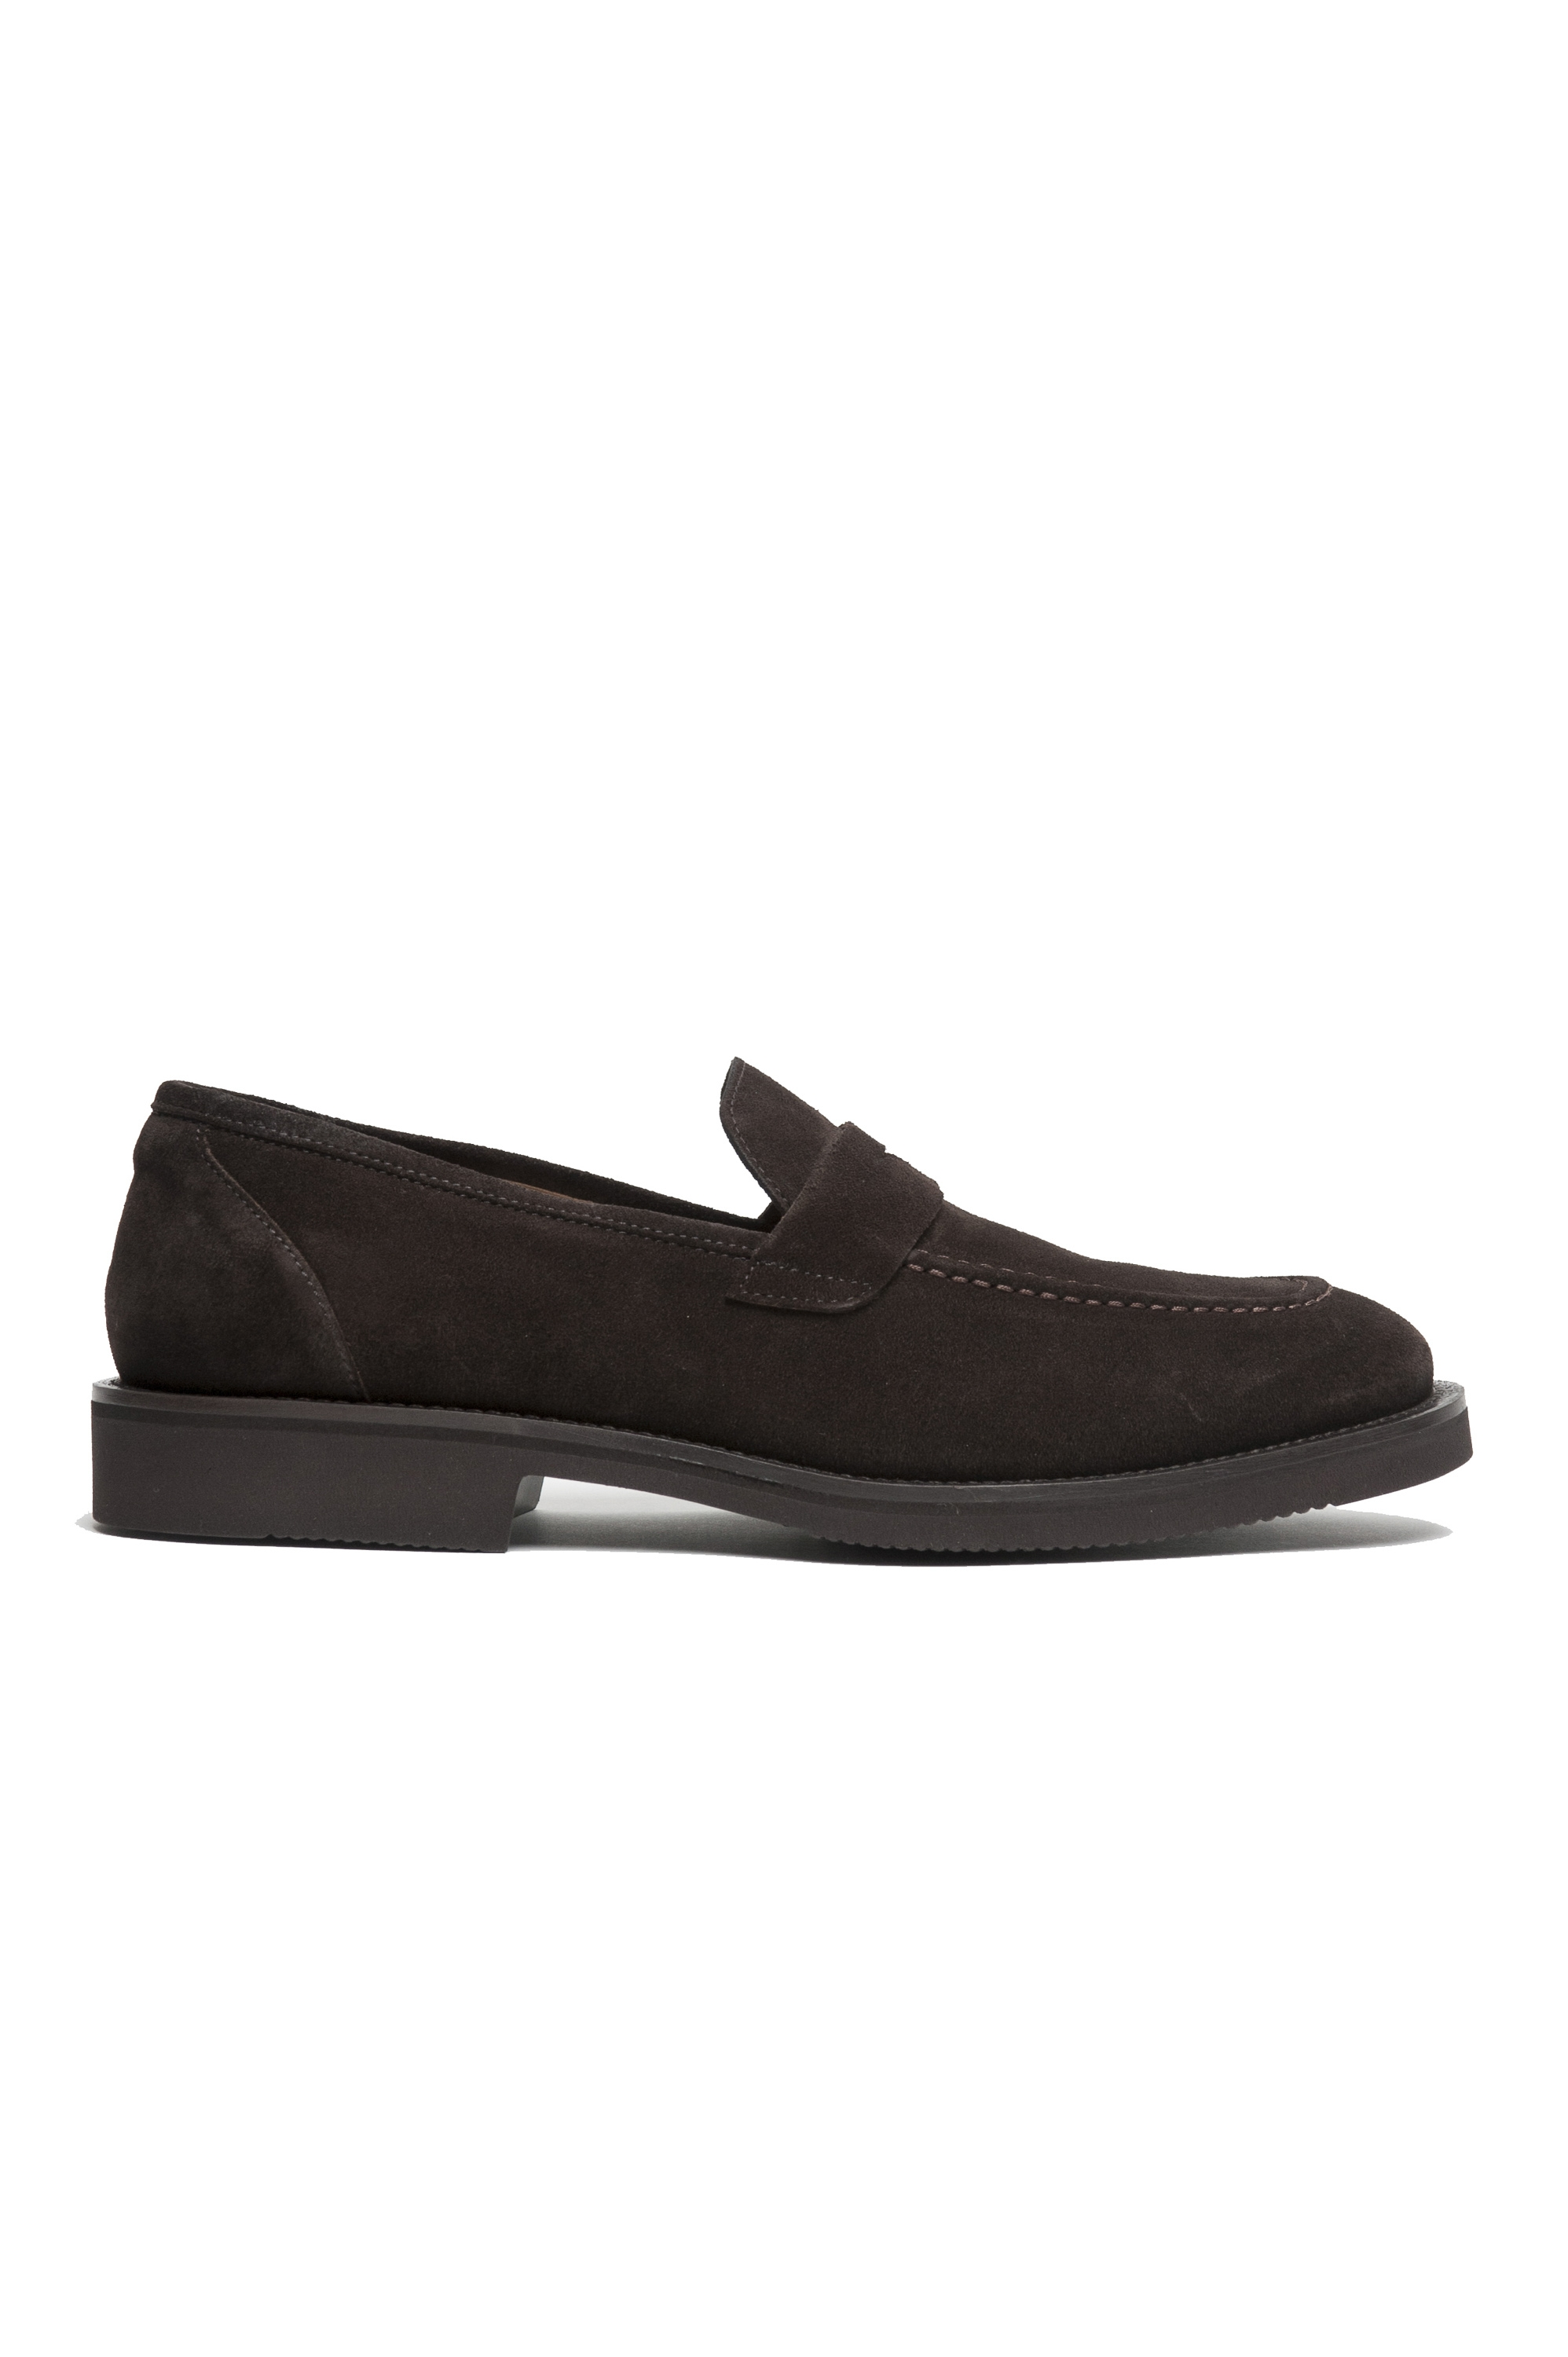 SBU 01915_19AW Brown plain suede calfskin loafers with rubber sole  01